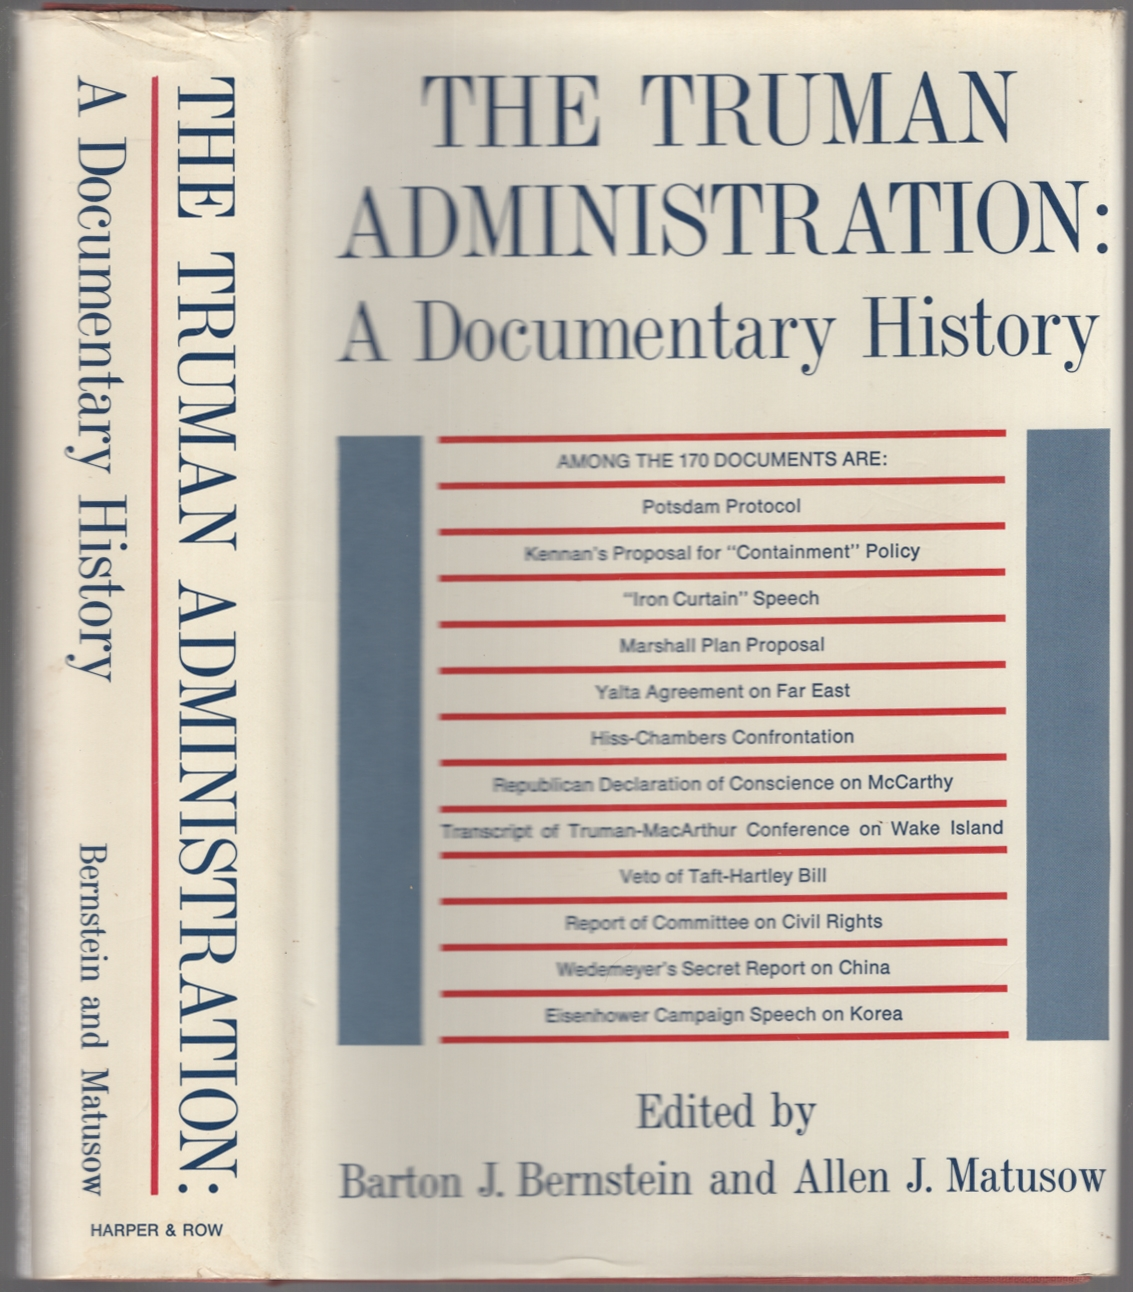 The Truman Administration: A Documentary History: BERNSTEIN, Barton J.